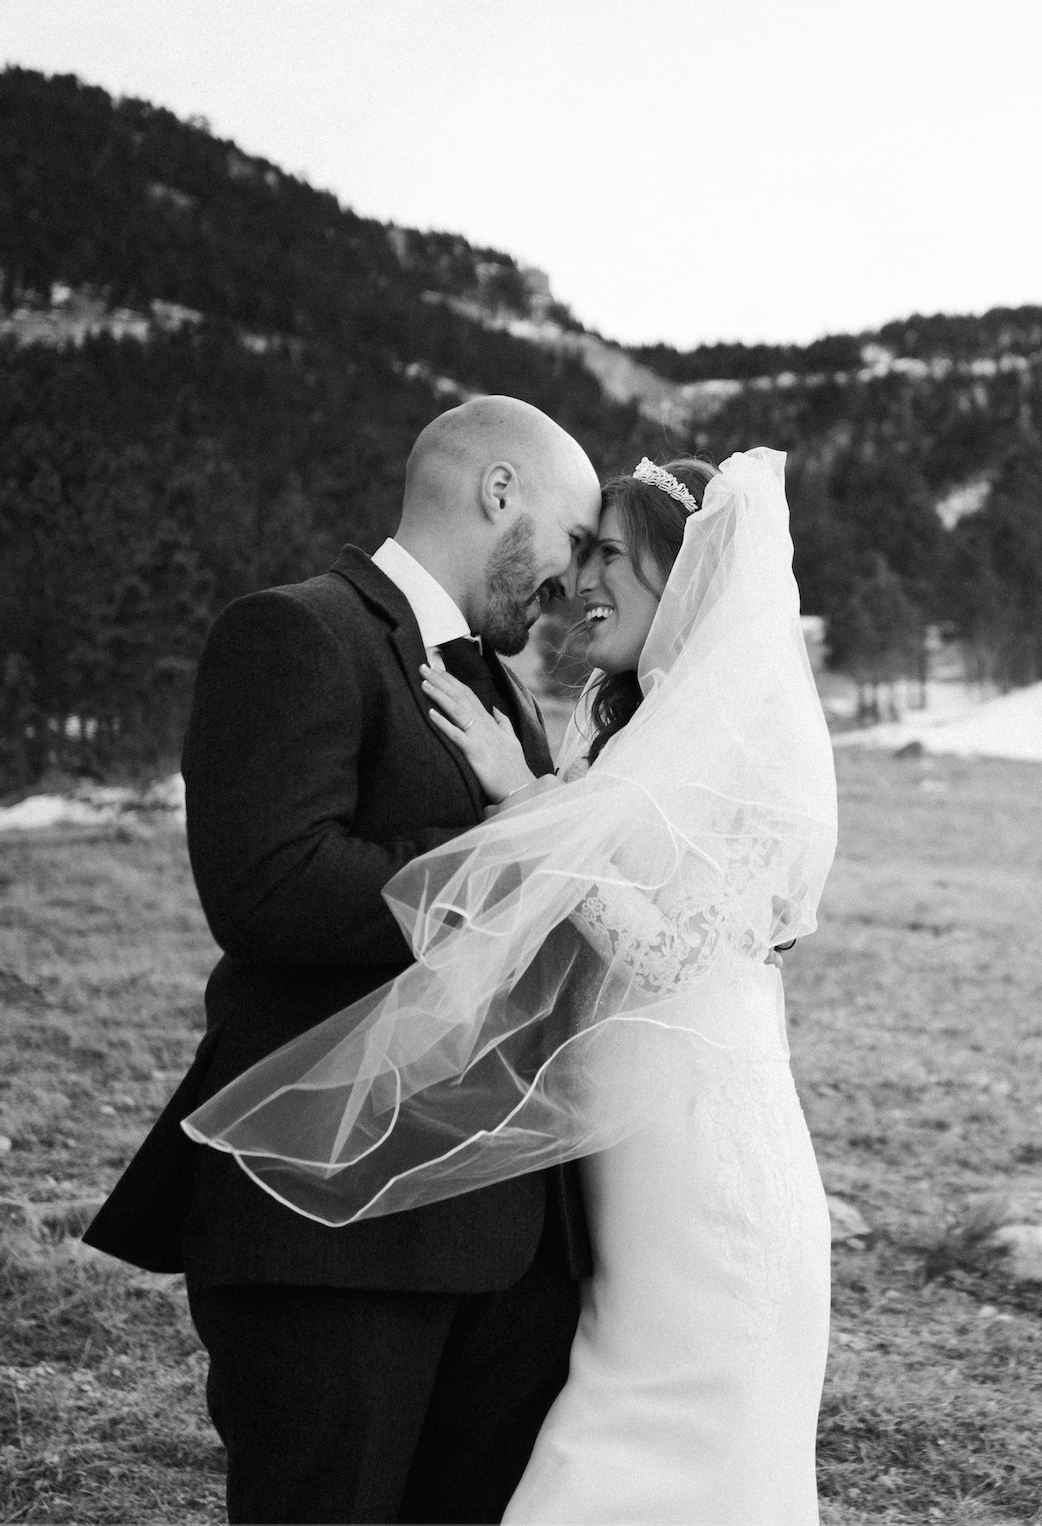 Bride And Groom Wedding Photography In The Mountains In 2020 Montana Wedding Photographer Montana Wedding Wedding Photographers